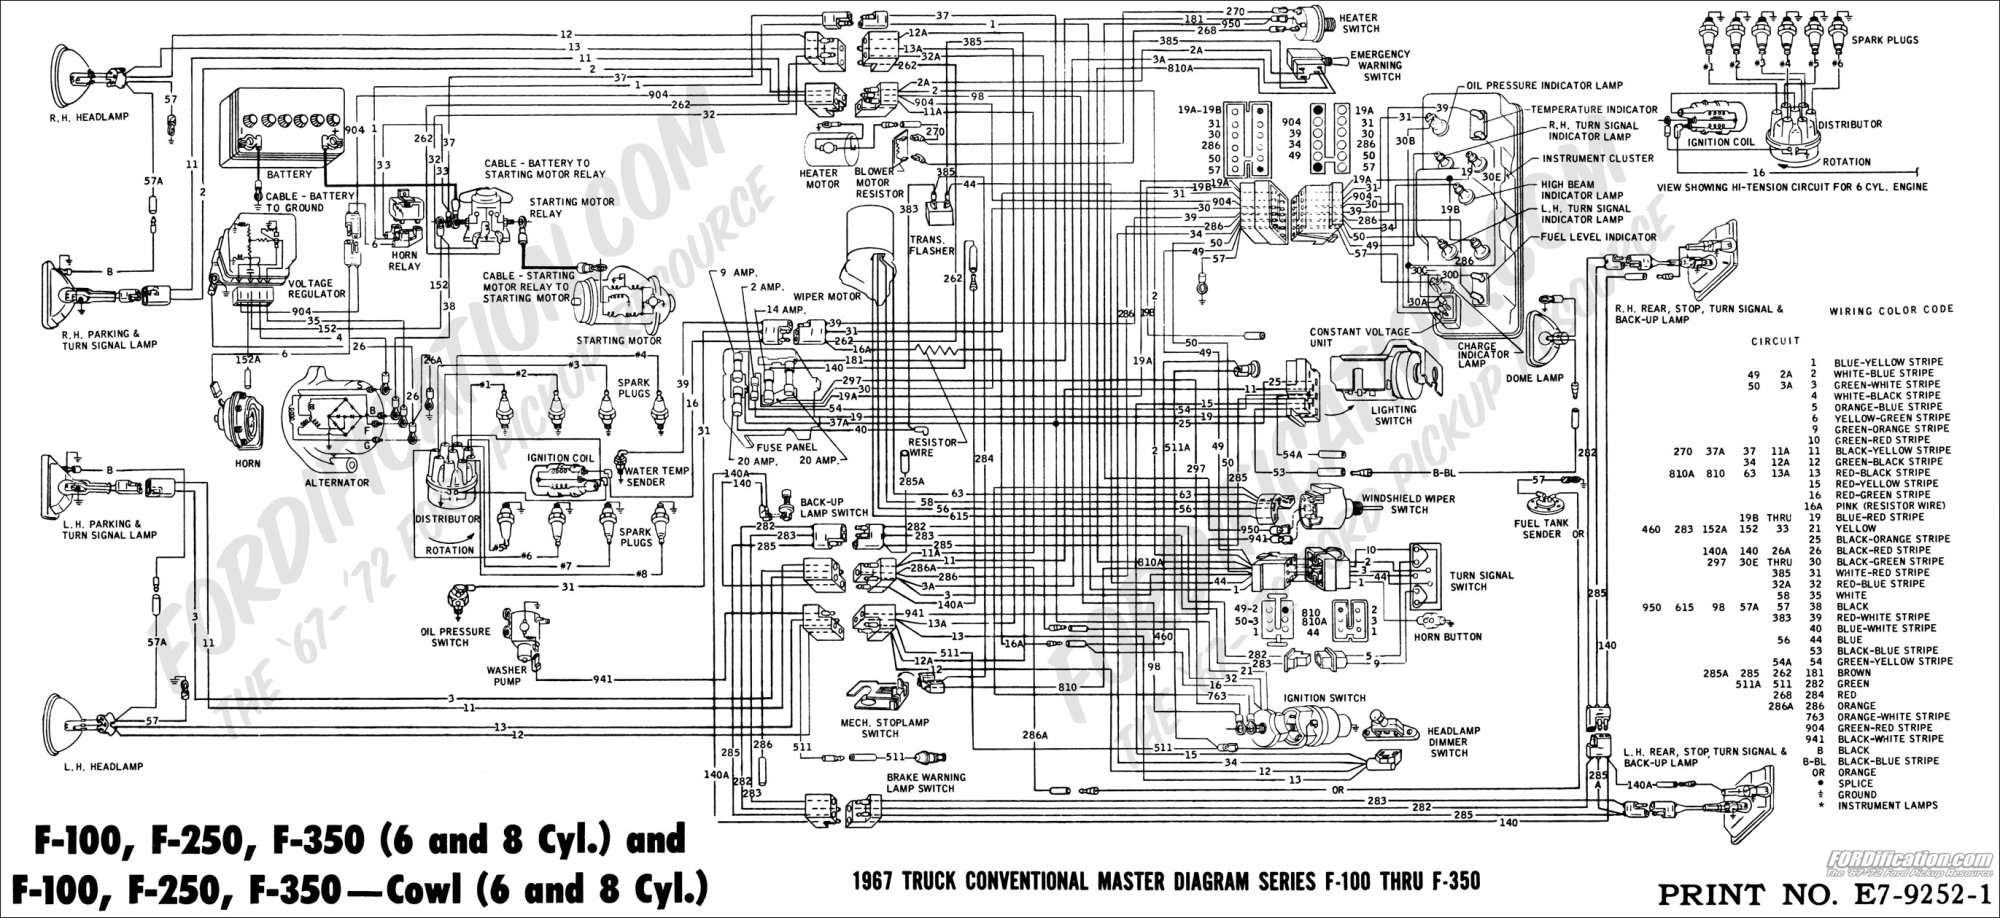 hight resolution of 2014 ford f serie wiring diagram wiring diagram hub mitsubishi starion wiring diagram 2014 ford e